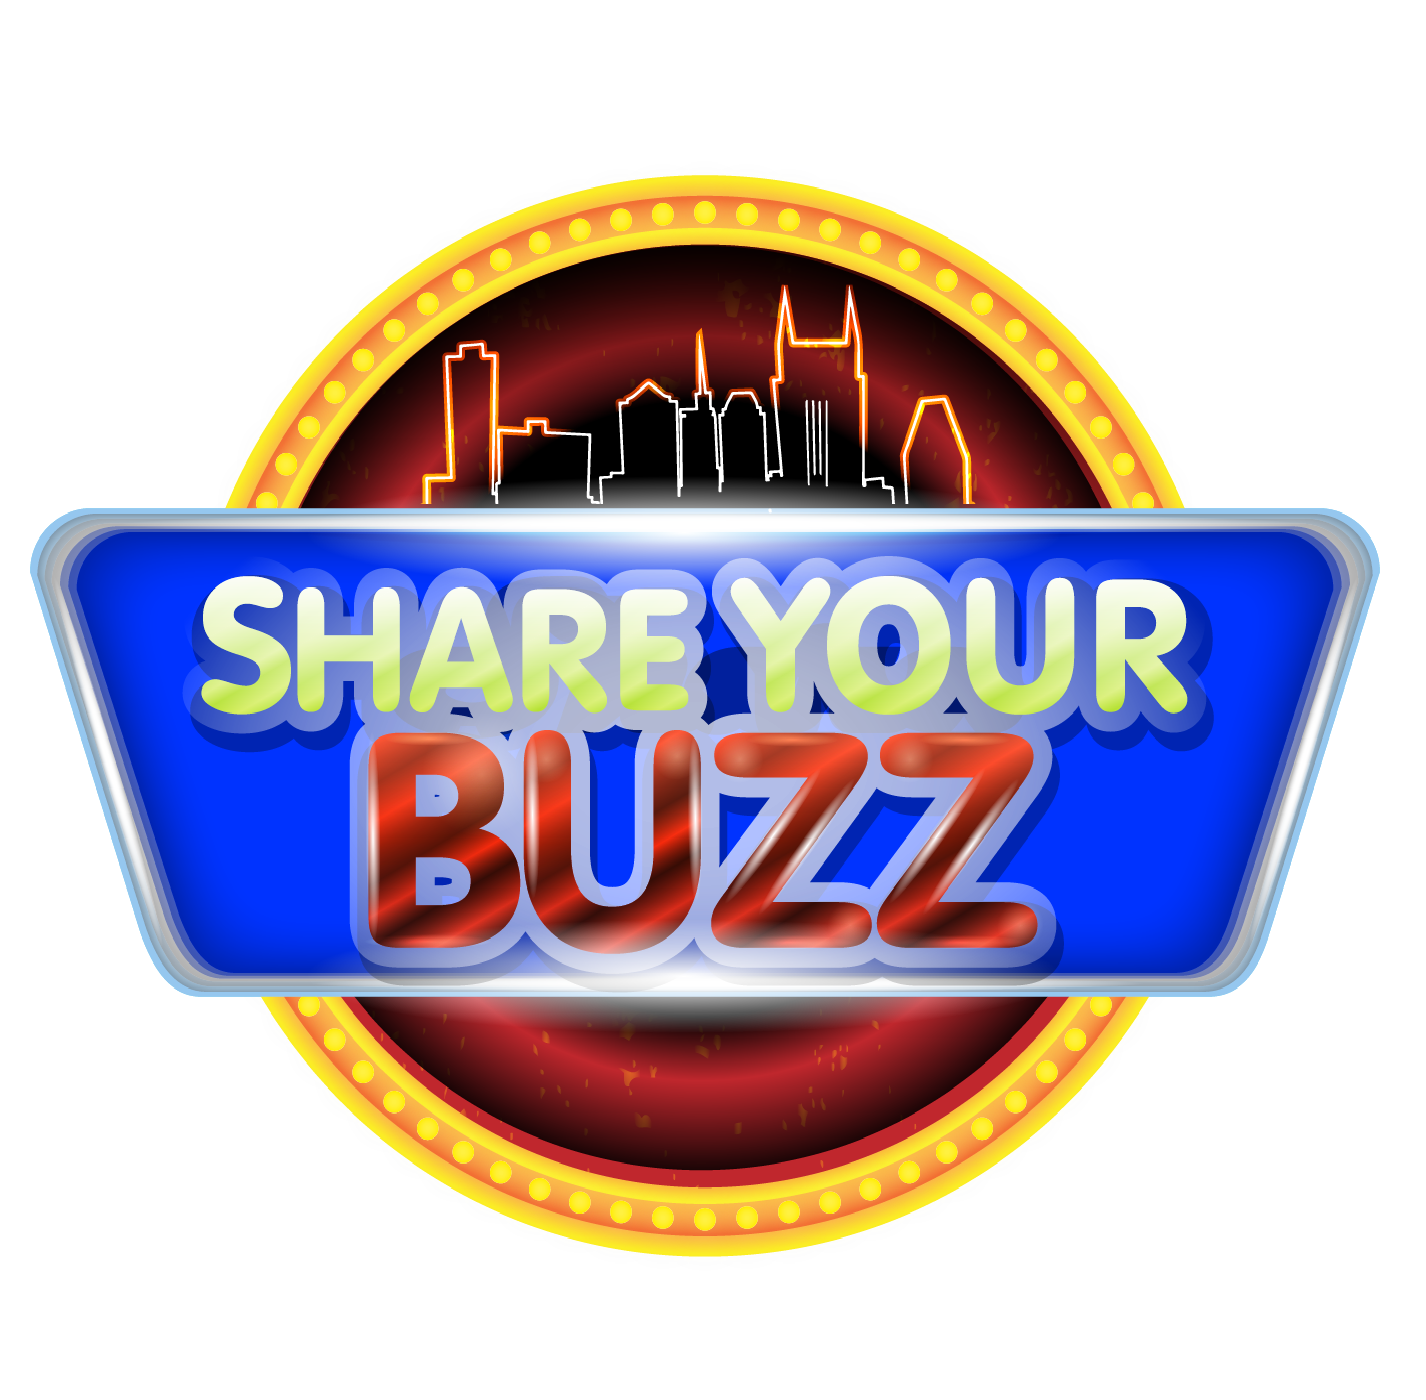 Podcast - Share Your Buzz